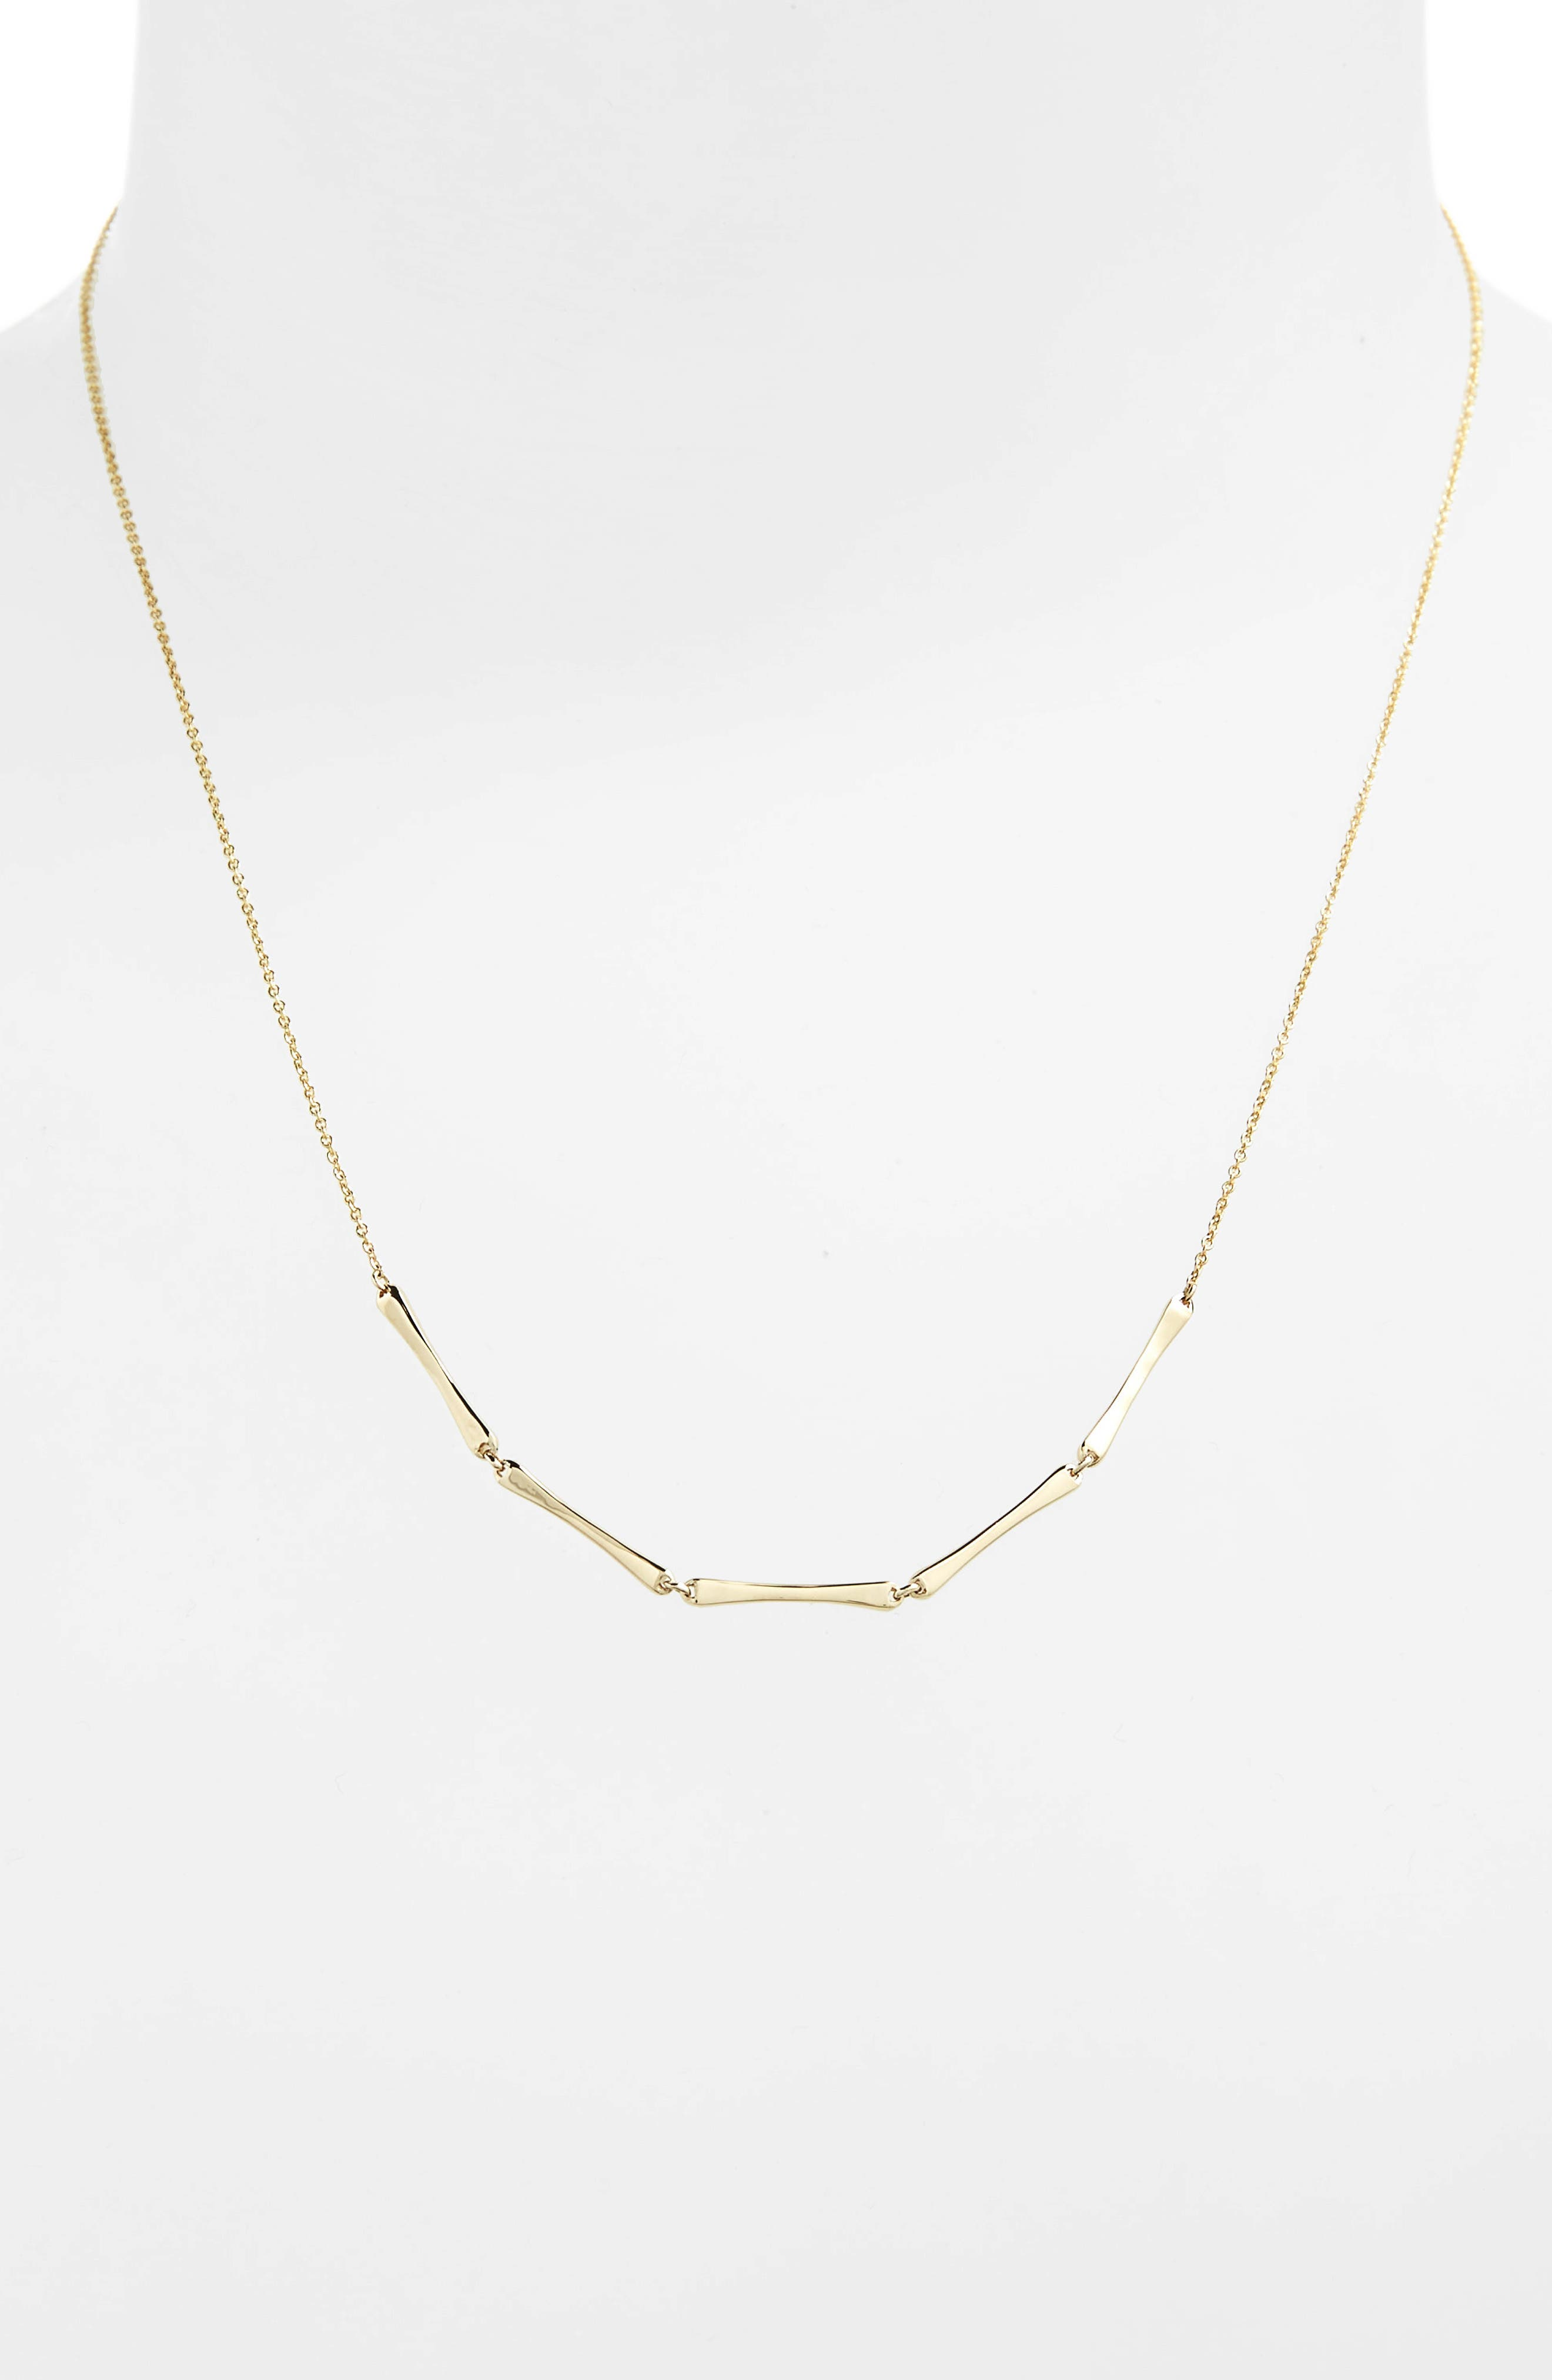 Bar Station Necklace,                             Alternate thumbnail 2, color,                             YELLOW GOLD